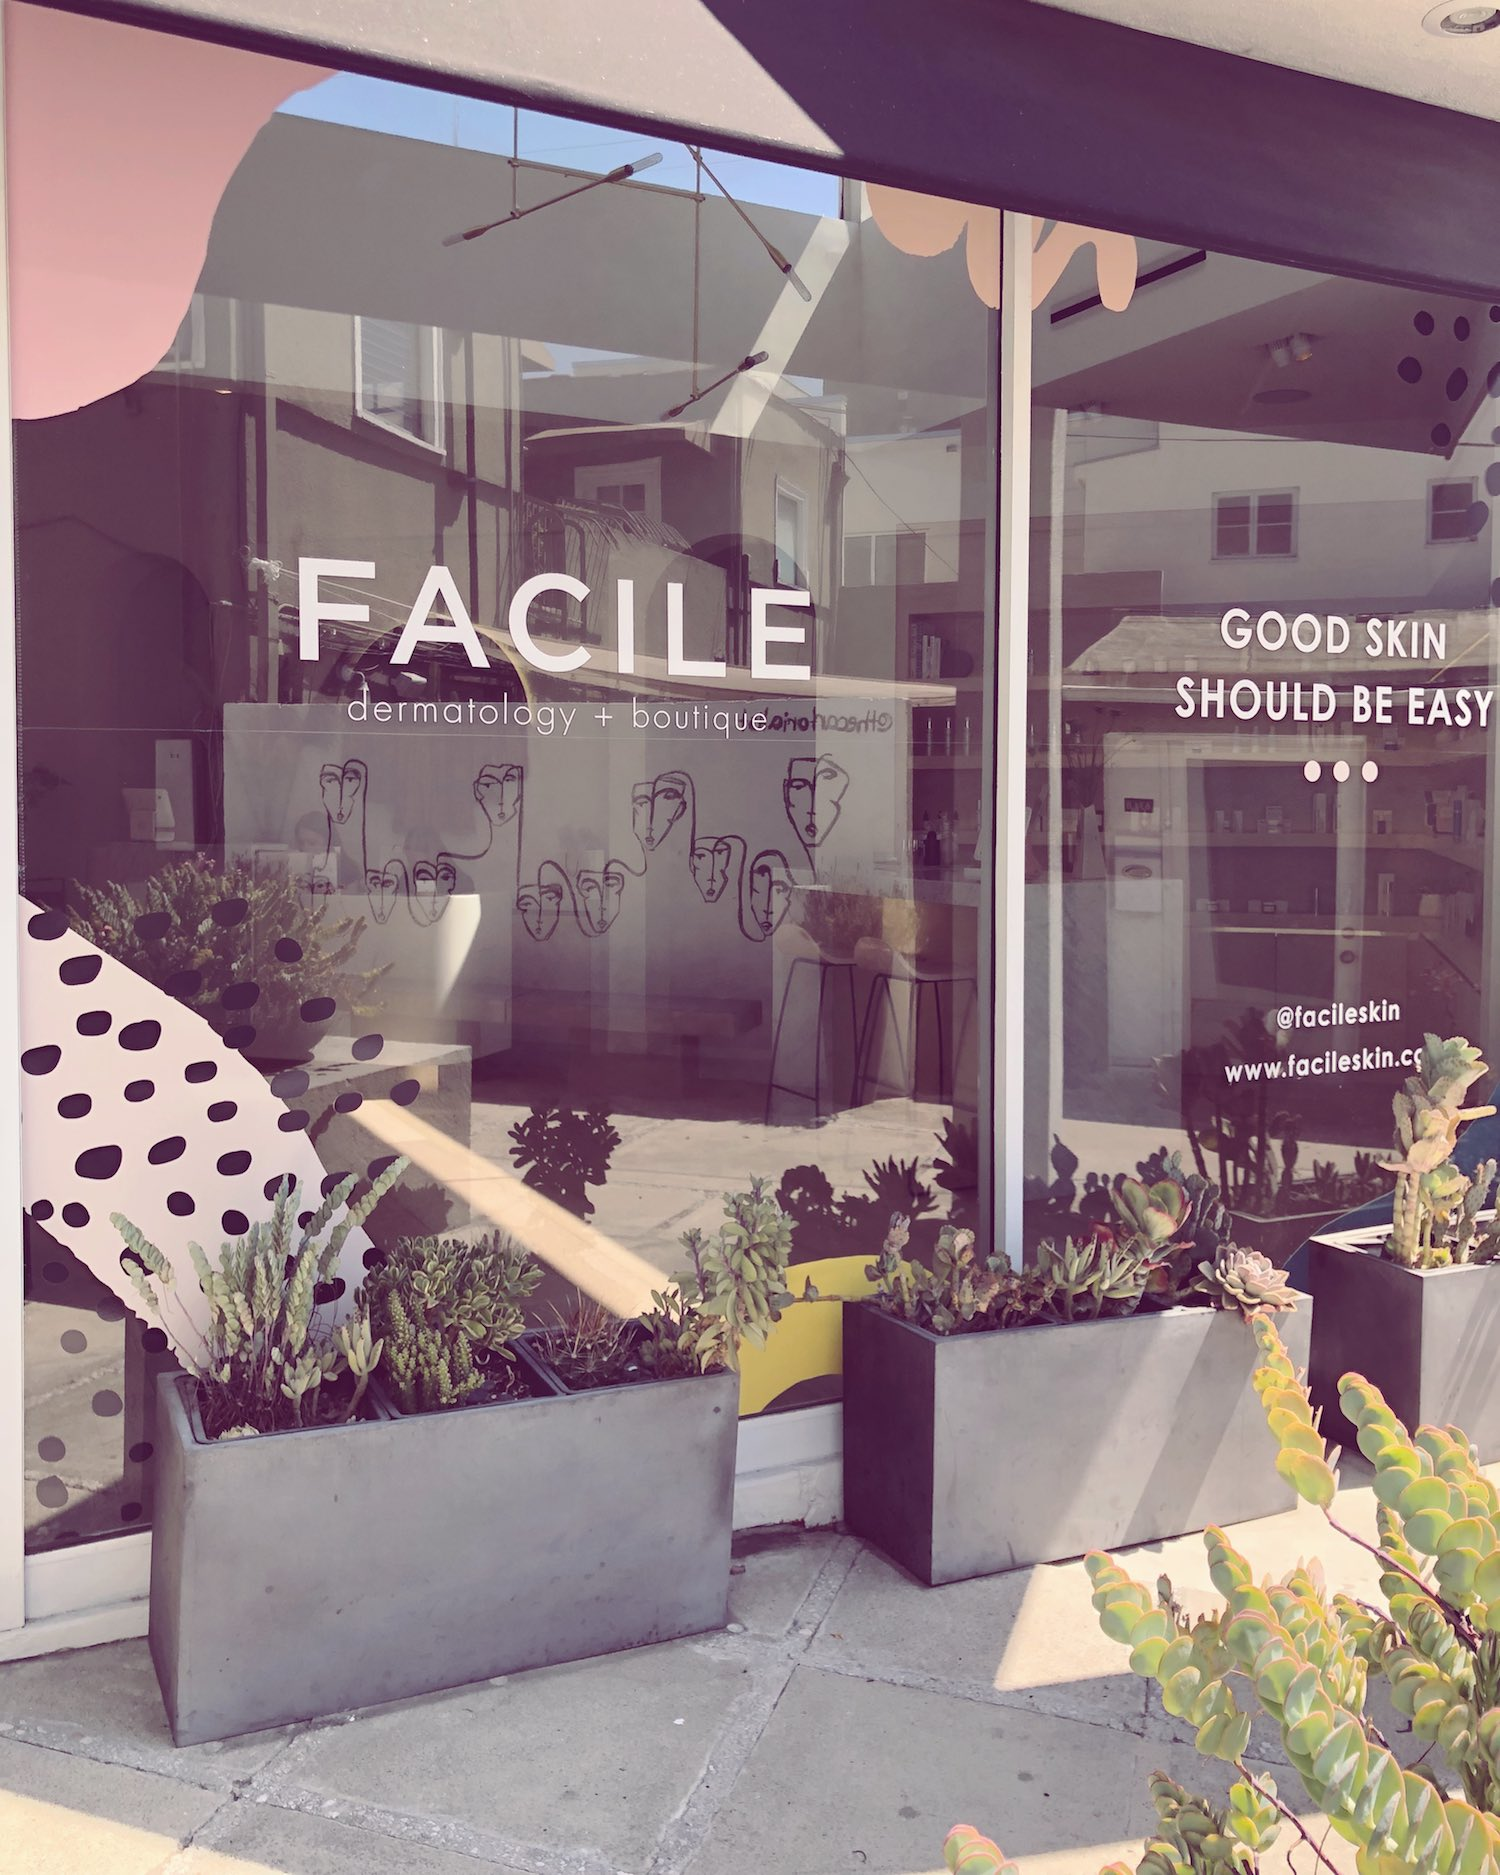 Facile Dermatology West Hollywood